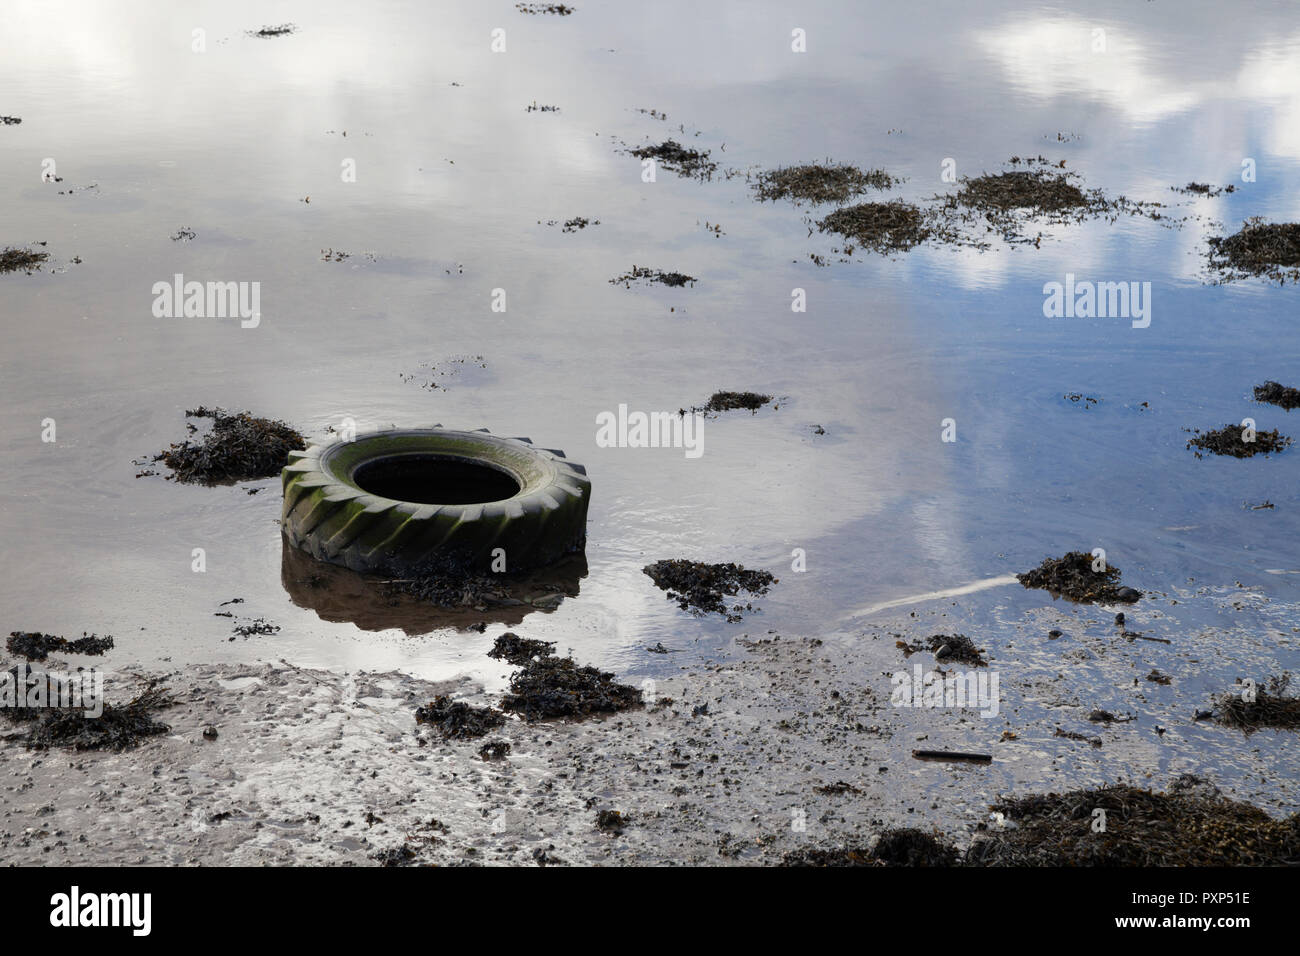 Tractor tyre washed up on the shore. Pollution in the sea.bay Stock Photo